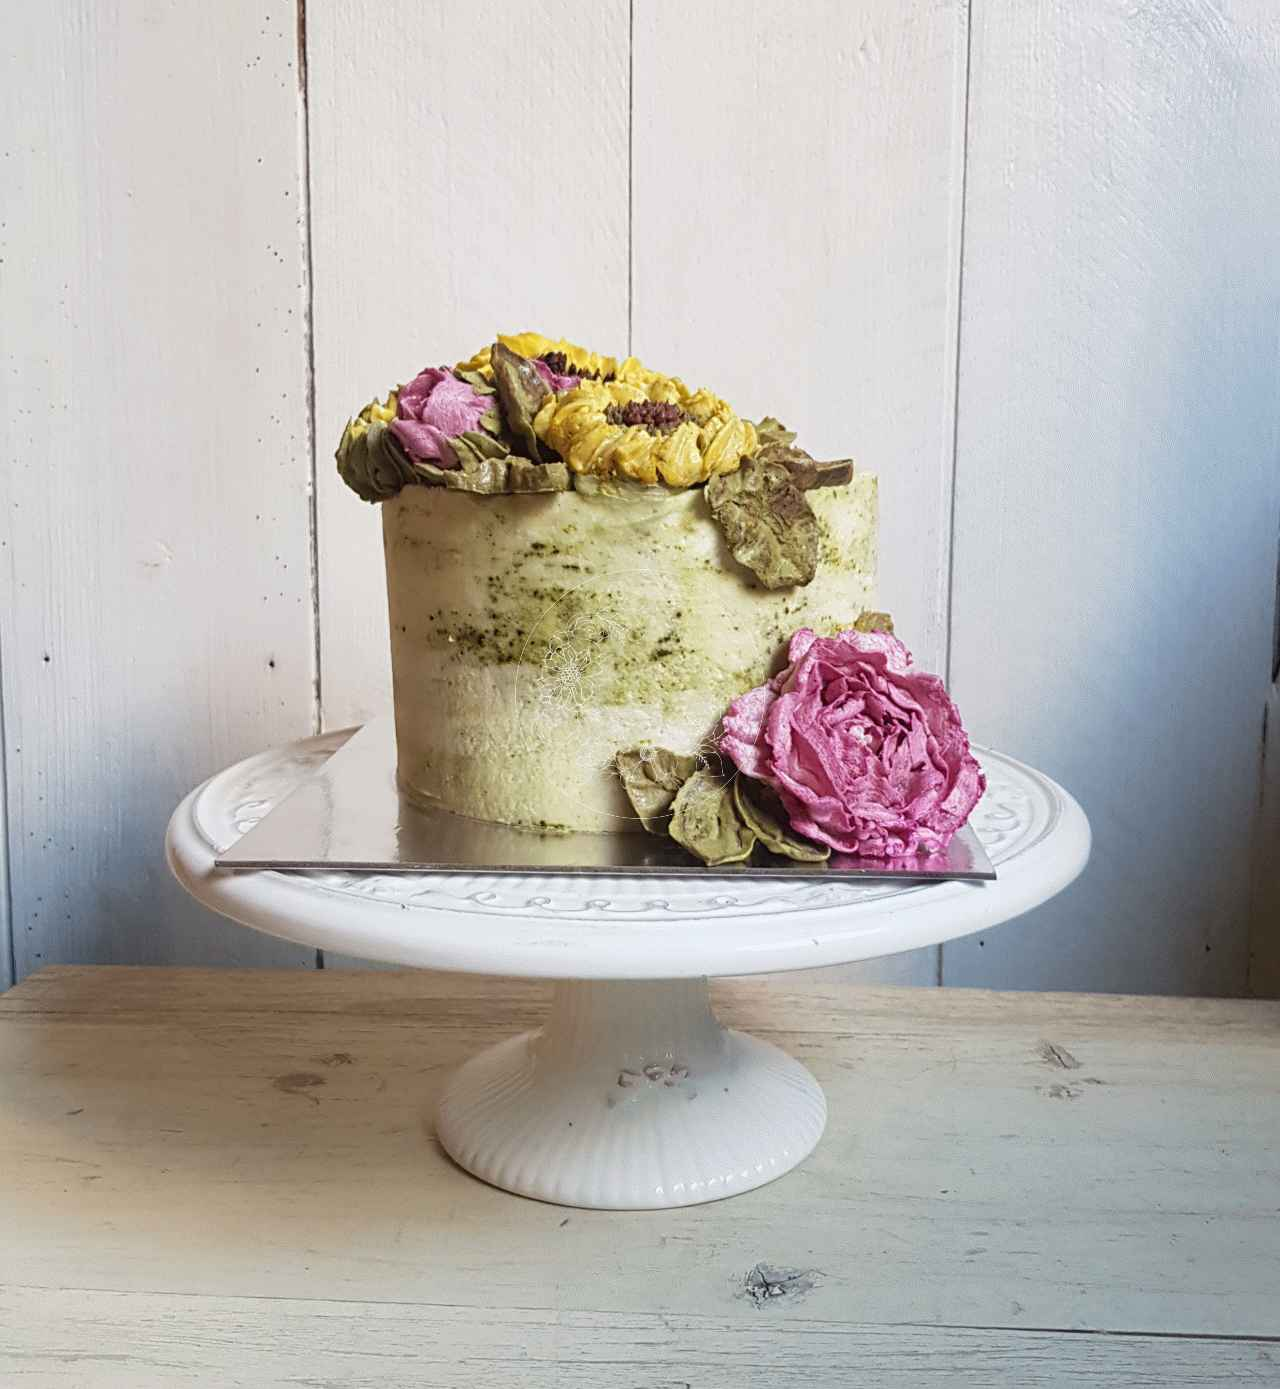 40th Birthday Cake, Sweet Blossom cake with Matcha green tea flavour buttercream